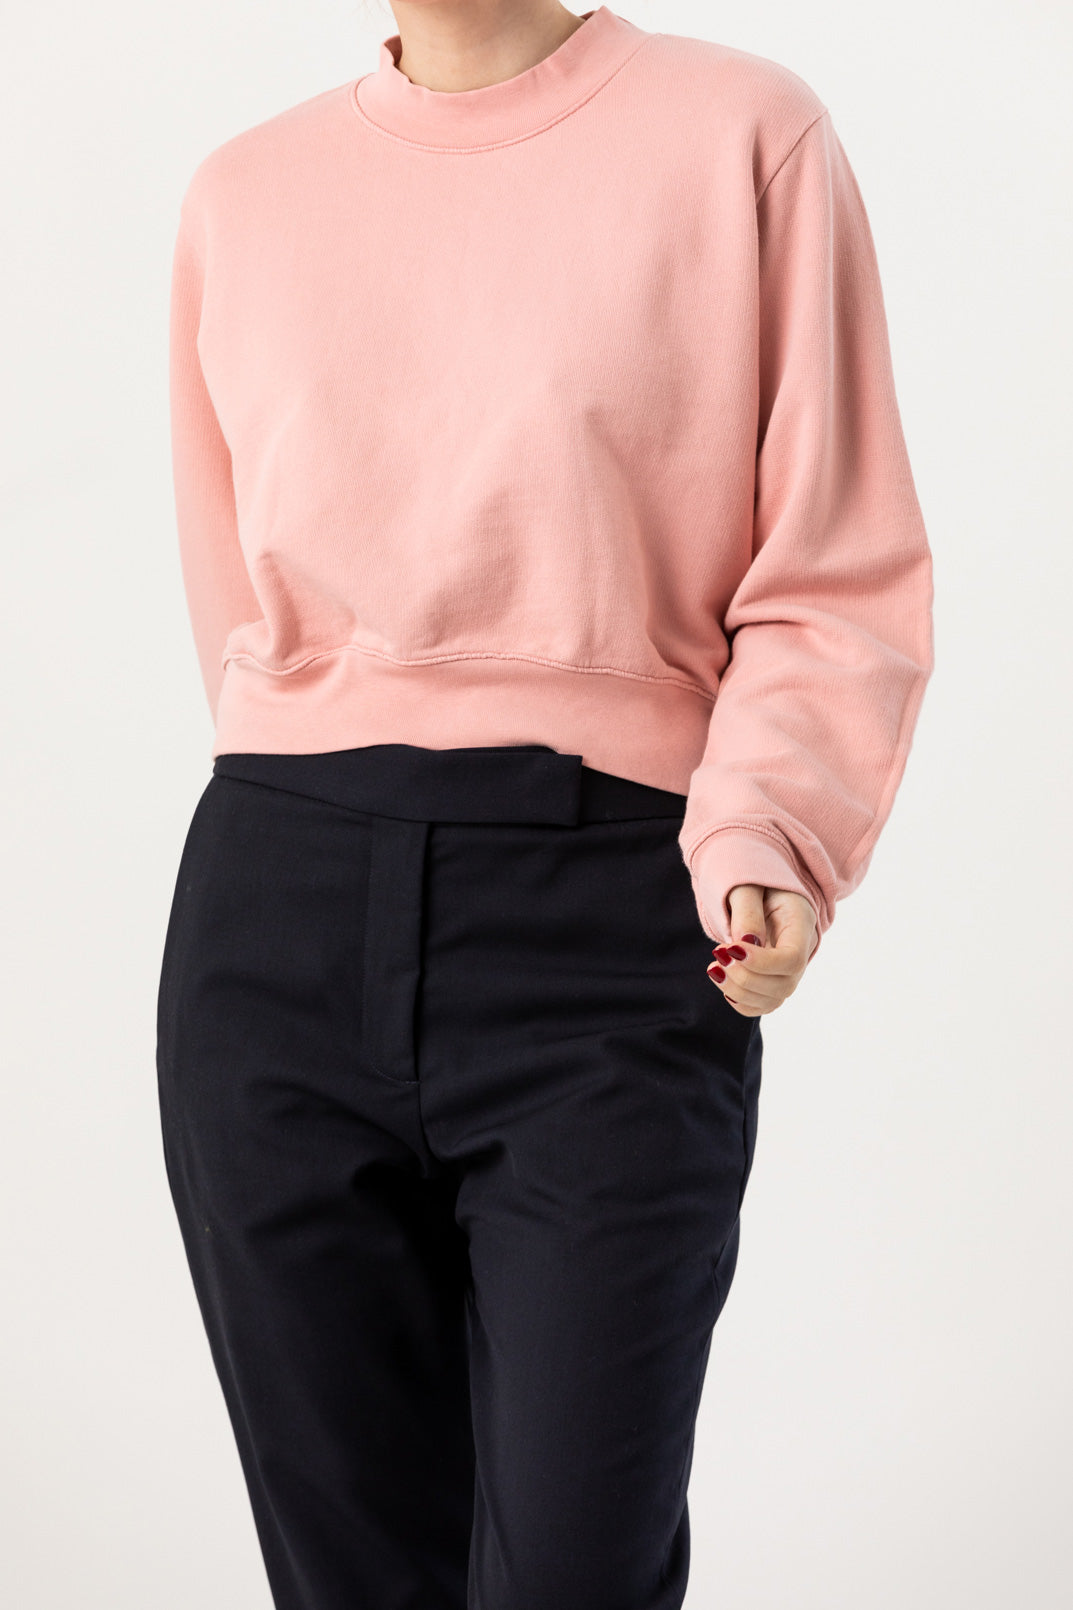 Cotton Citizen - Milan Cropped Crew Sweatshirt, Blush